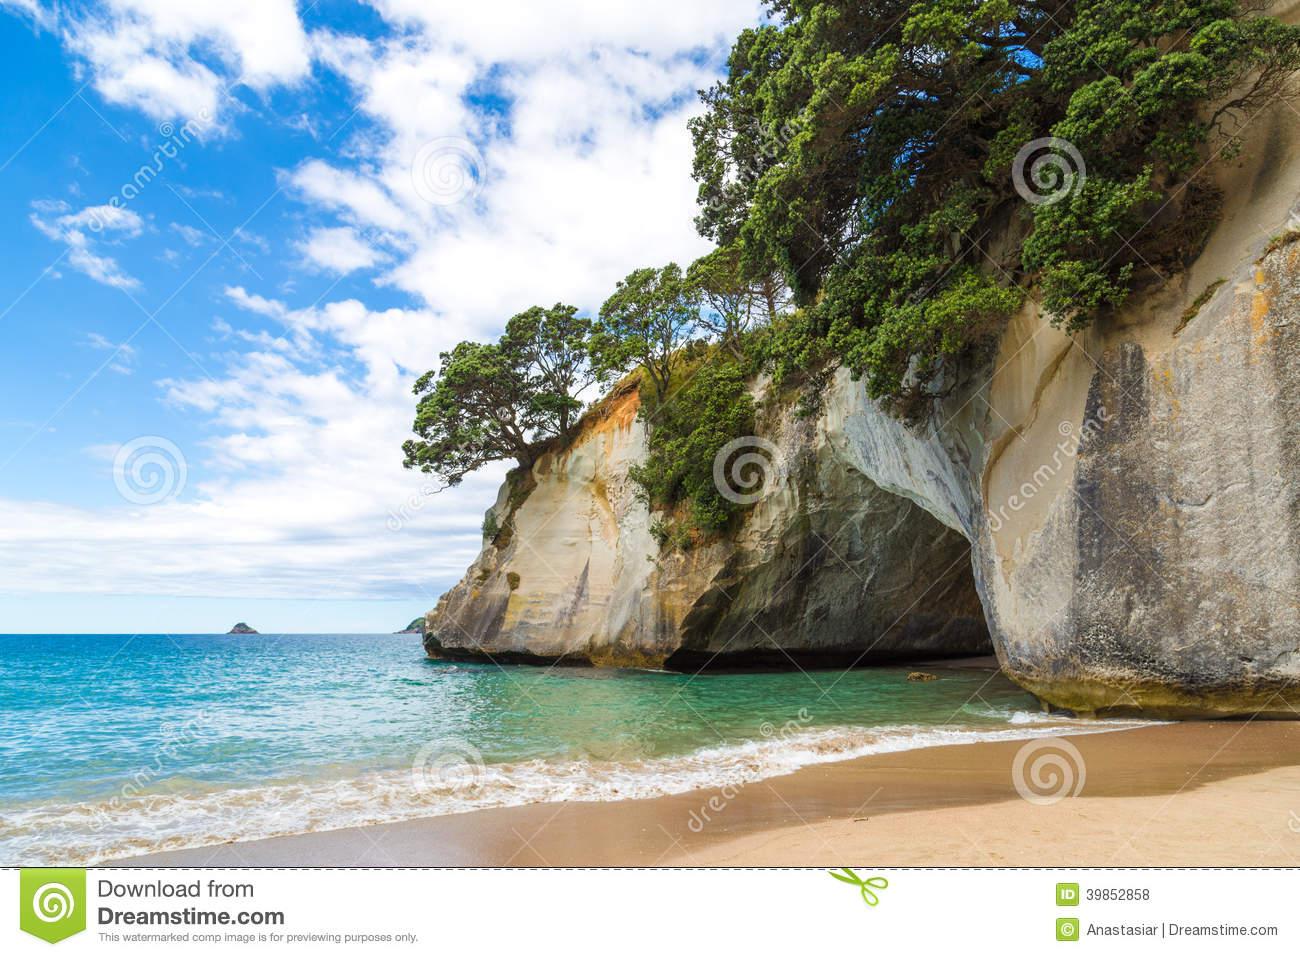 A Cave On The Beach In Cathedral Cove, New Zealand Stock Photo.